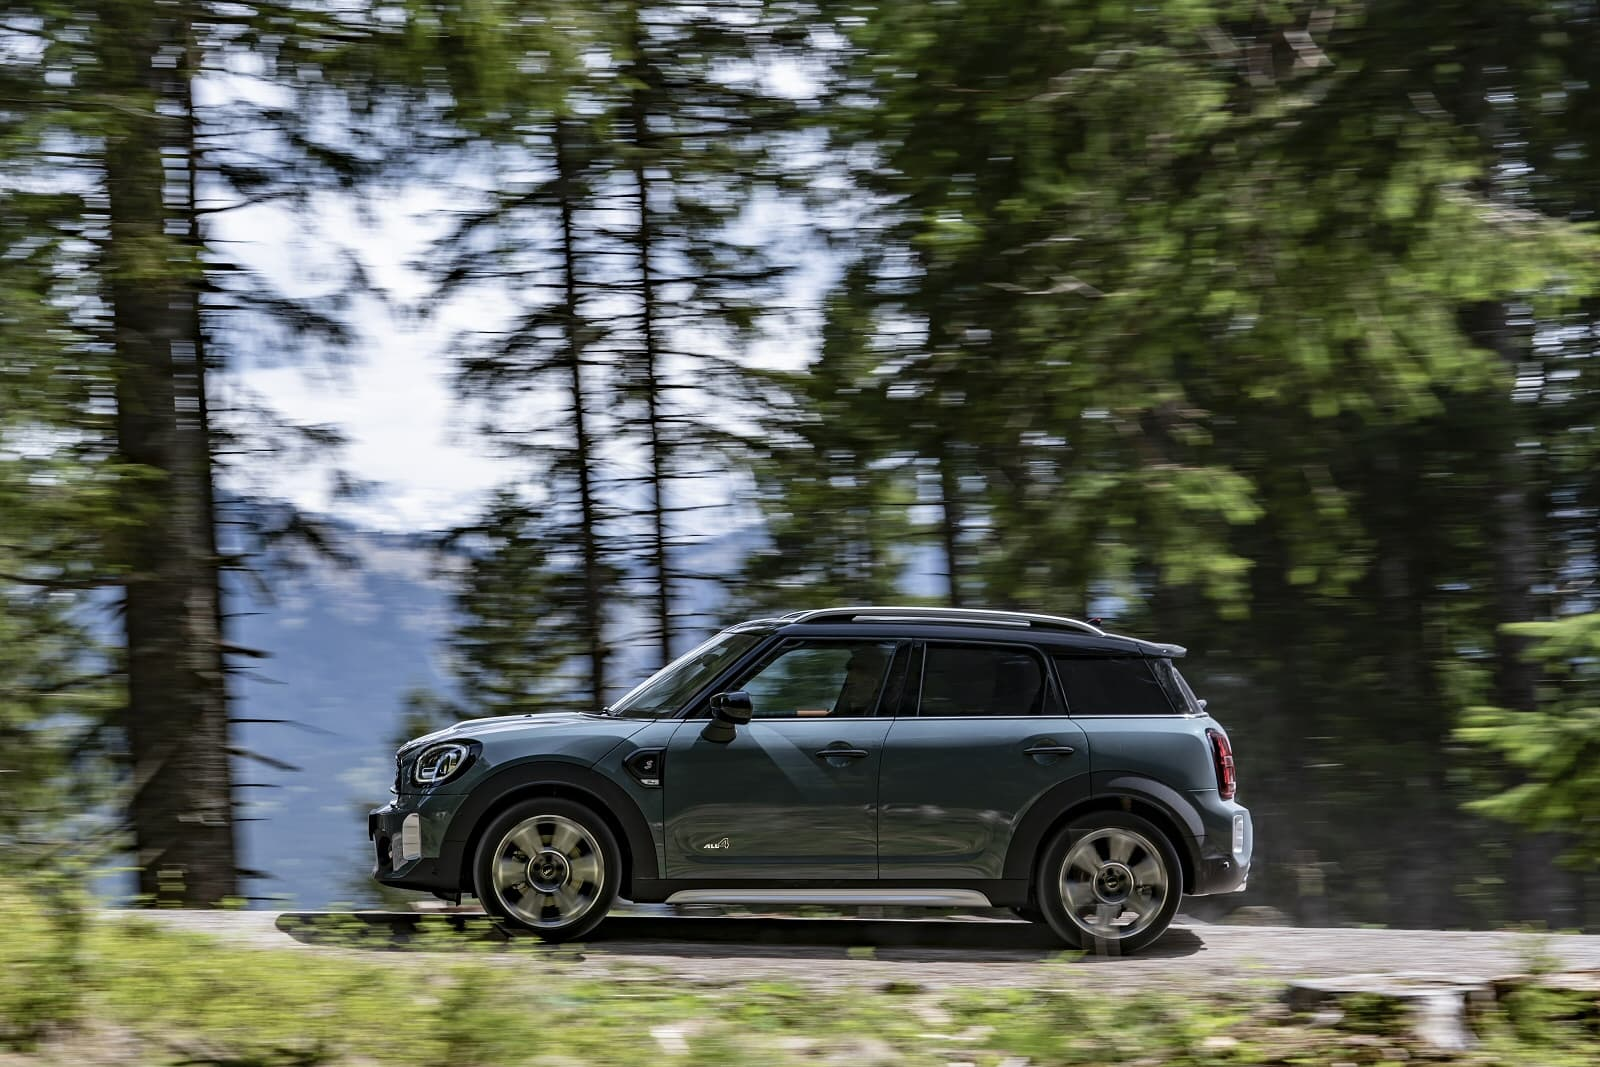 countryman_hatchback_82696.jpg - 2.0 Cooper S Classic 5dr Auto